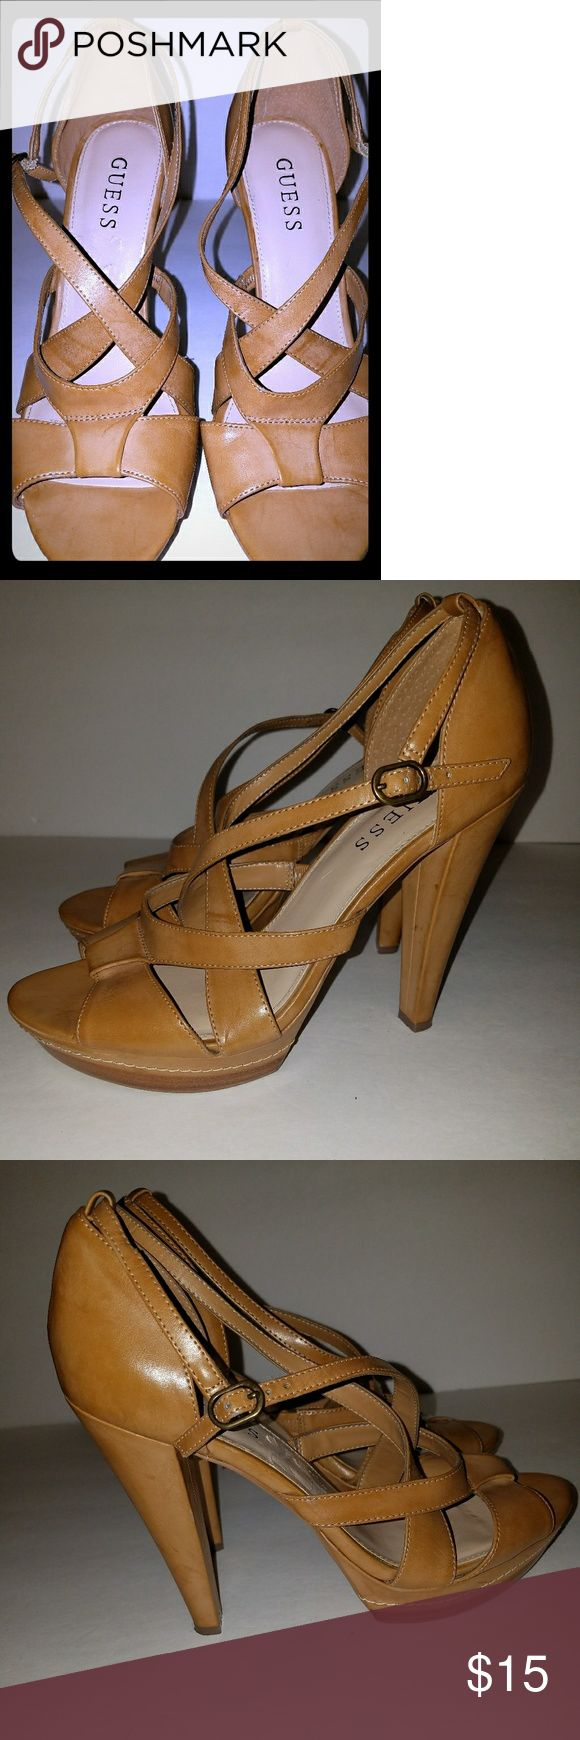 EUC GUESS Camel Strappy Stilletos size 8 EUC GUESS Camel Strappy Stilletos size 8 Manmade, but looks like leather Guess Shoes Heels